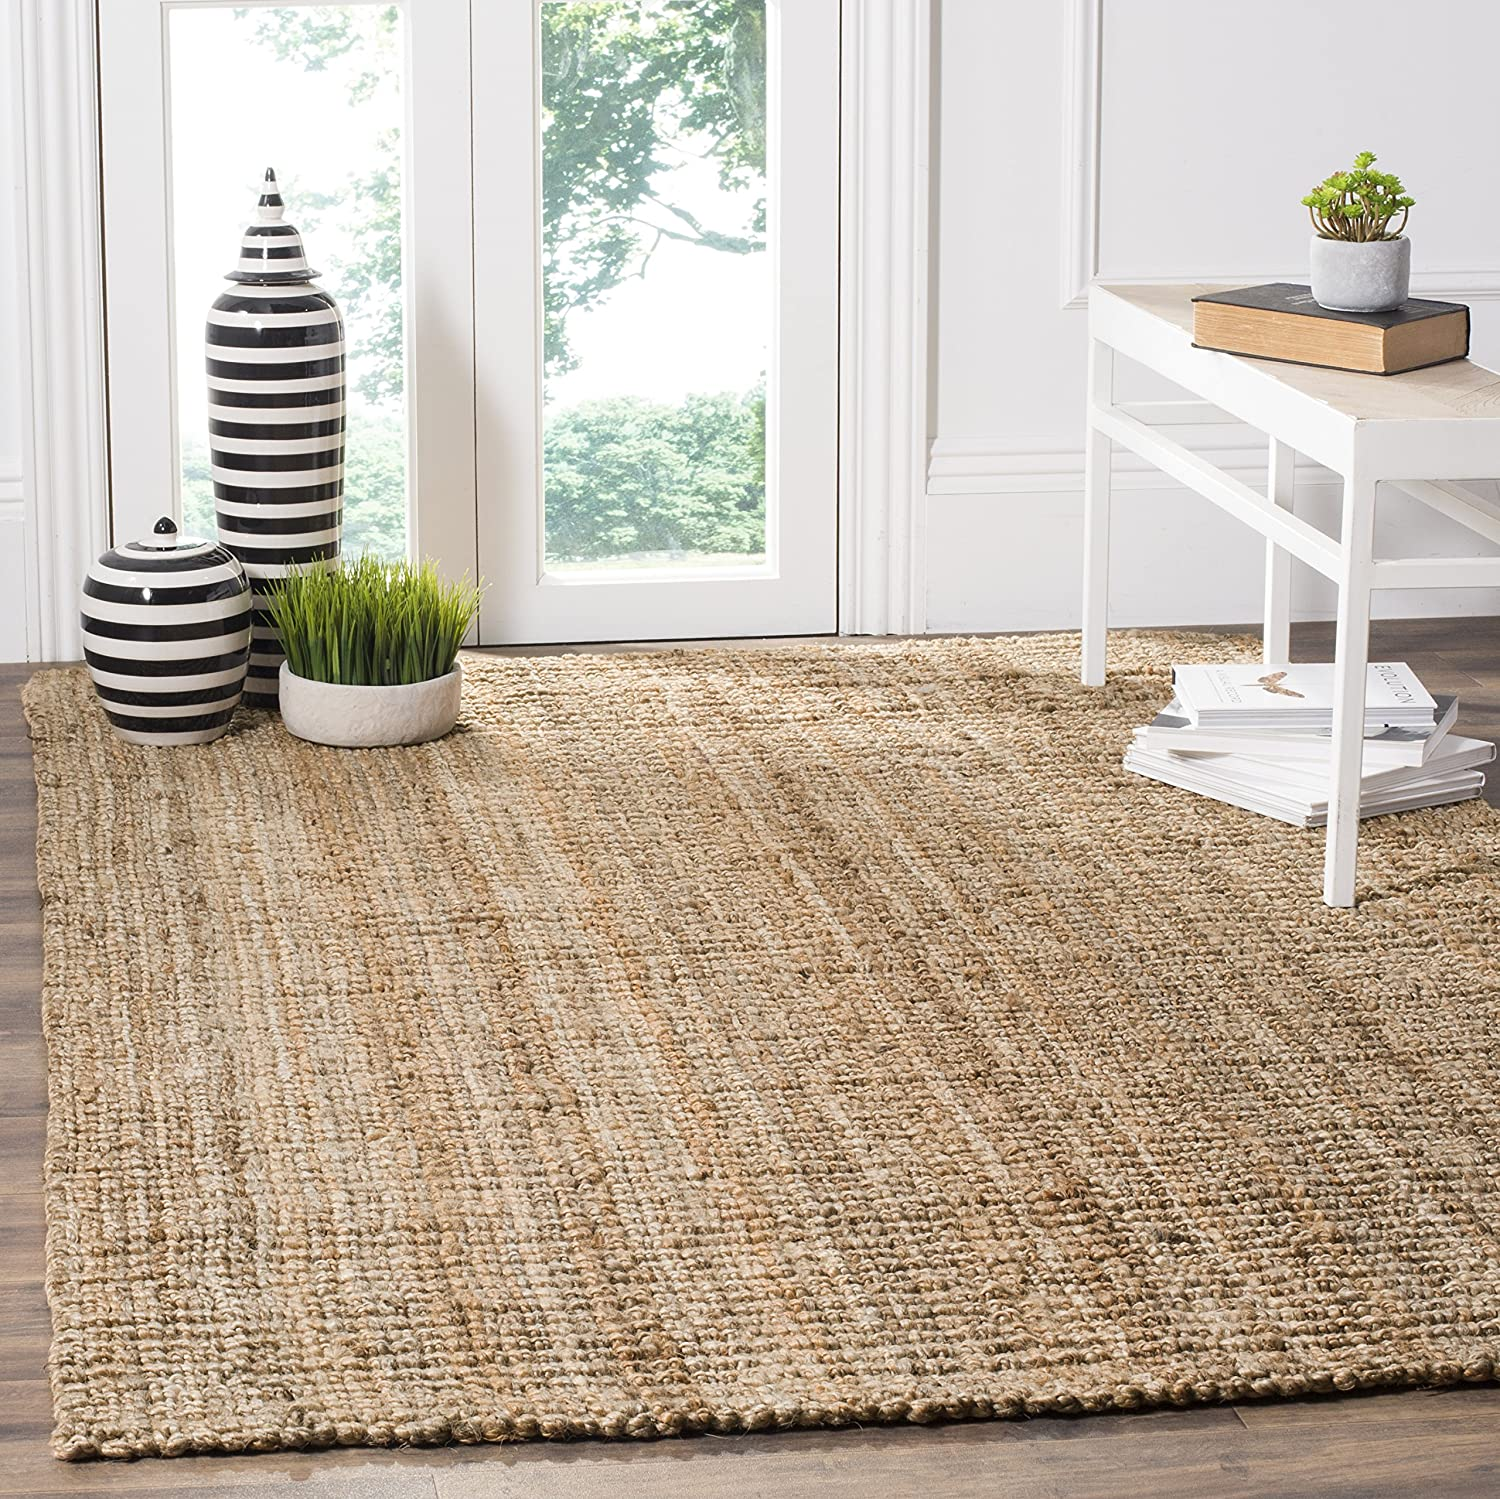 Amazon.com: Safavieh Natural Fiber Collection NF447A Hand Woven ...